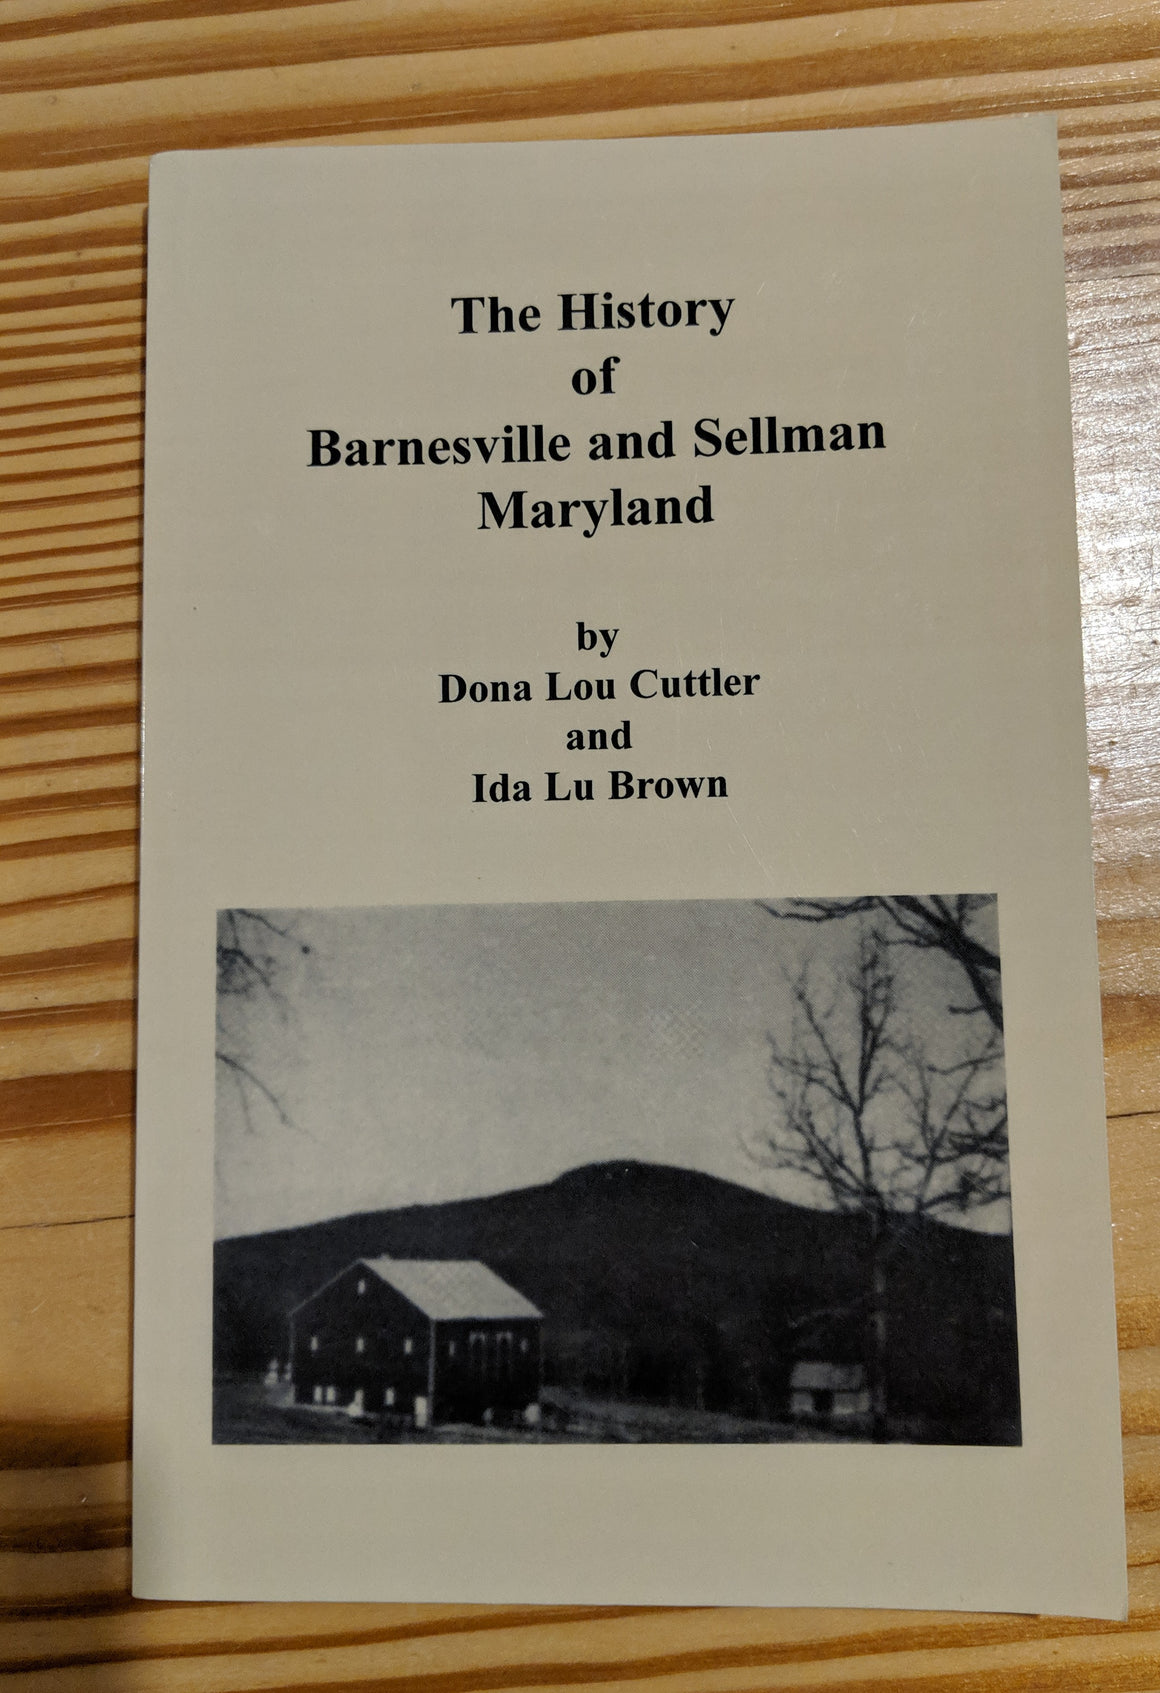 Book - The History of Barnesville & Sellman Maryland by Dona L. Cuttler & Ida Lu Brown